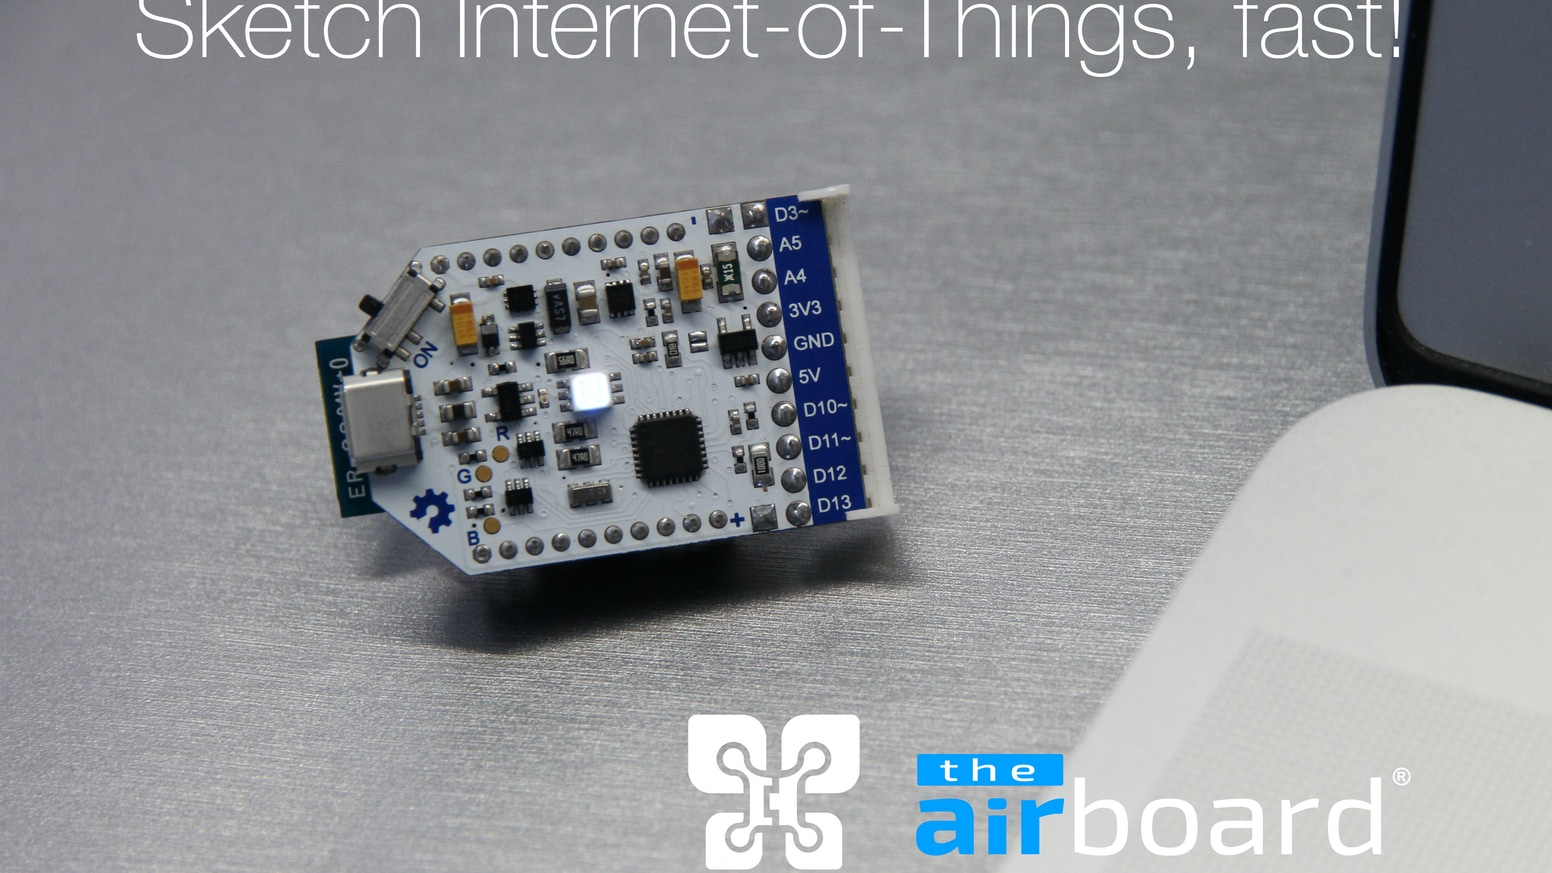 The AirBoard is a thumb-size, Arduino compatible, wireless, ubiquitous computer designed to sketch Internet-of-Things, fast!